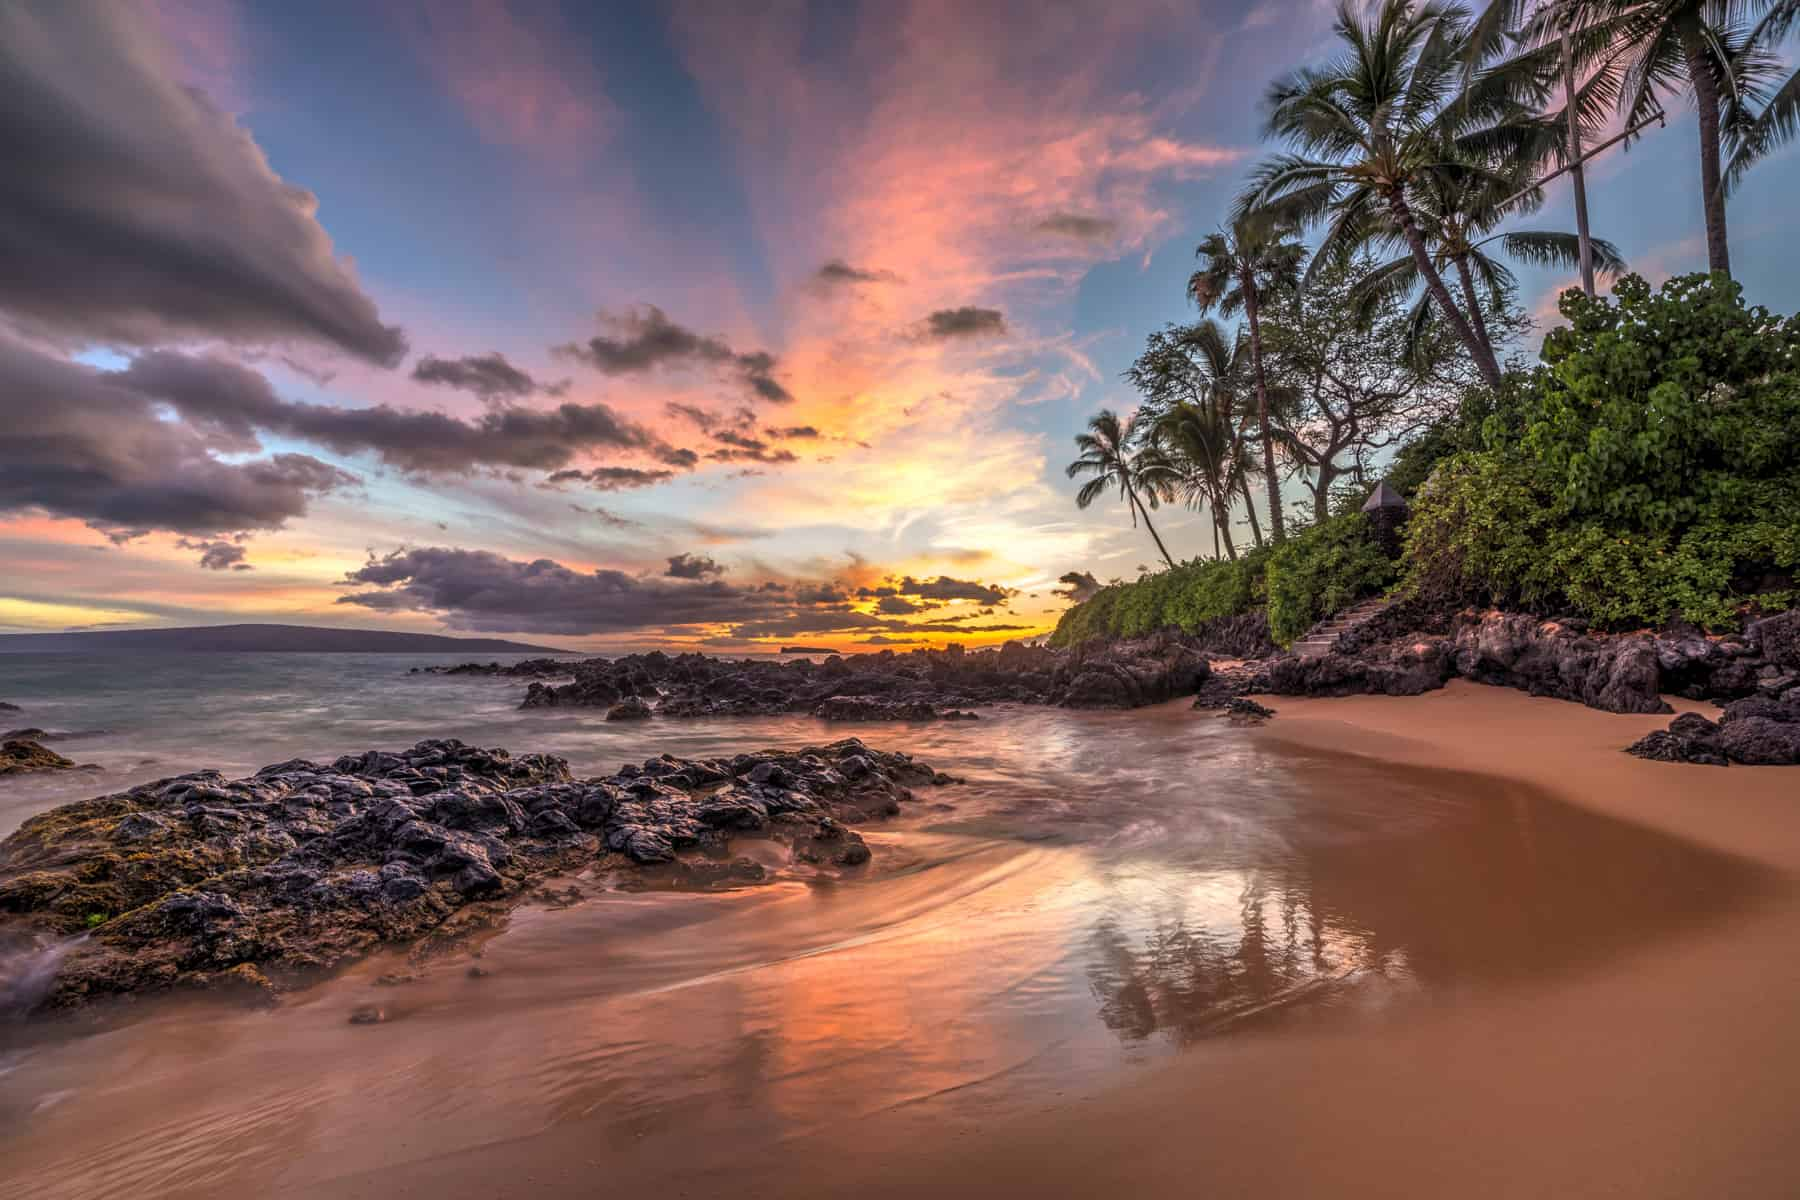 sunset in a secret cove in Maui, Hawaii - Partenza Travel creates luxury Hawaii vacation packages